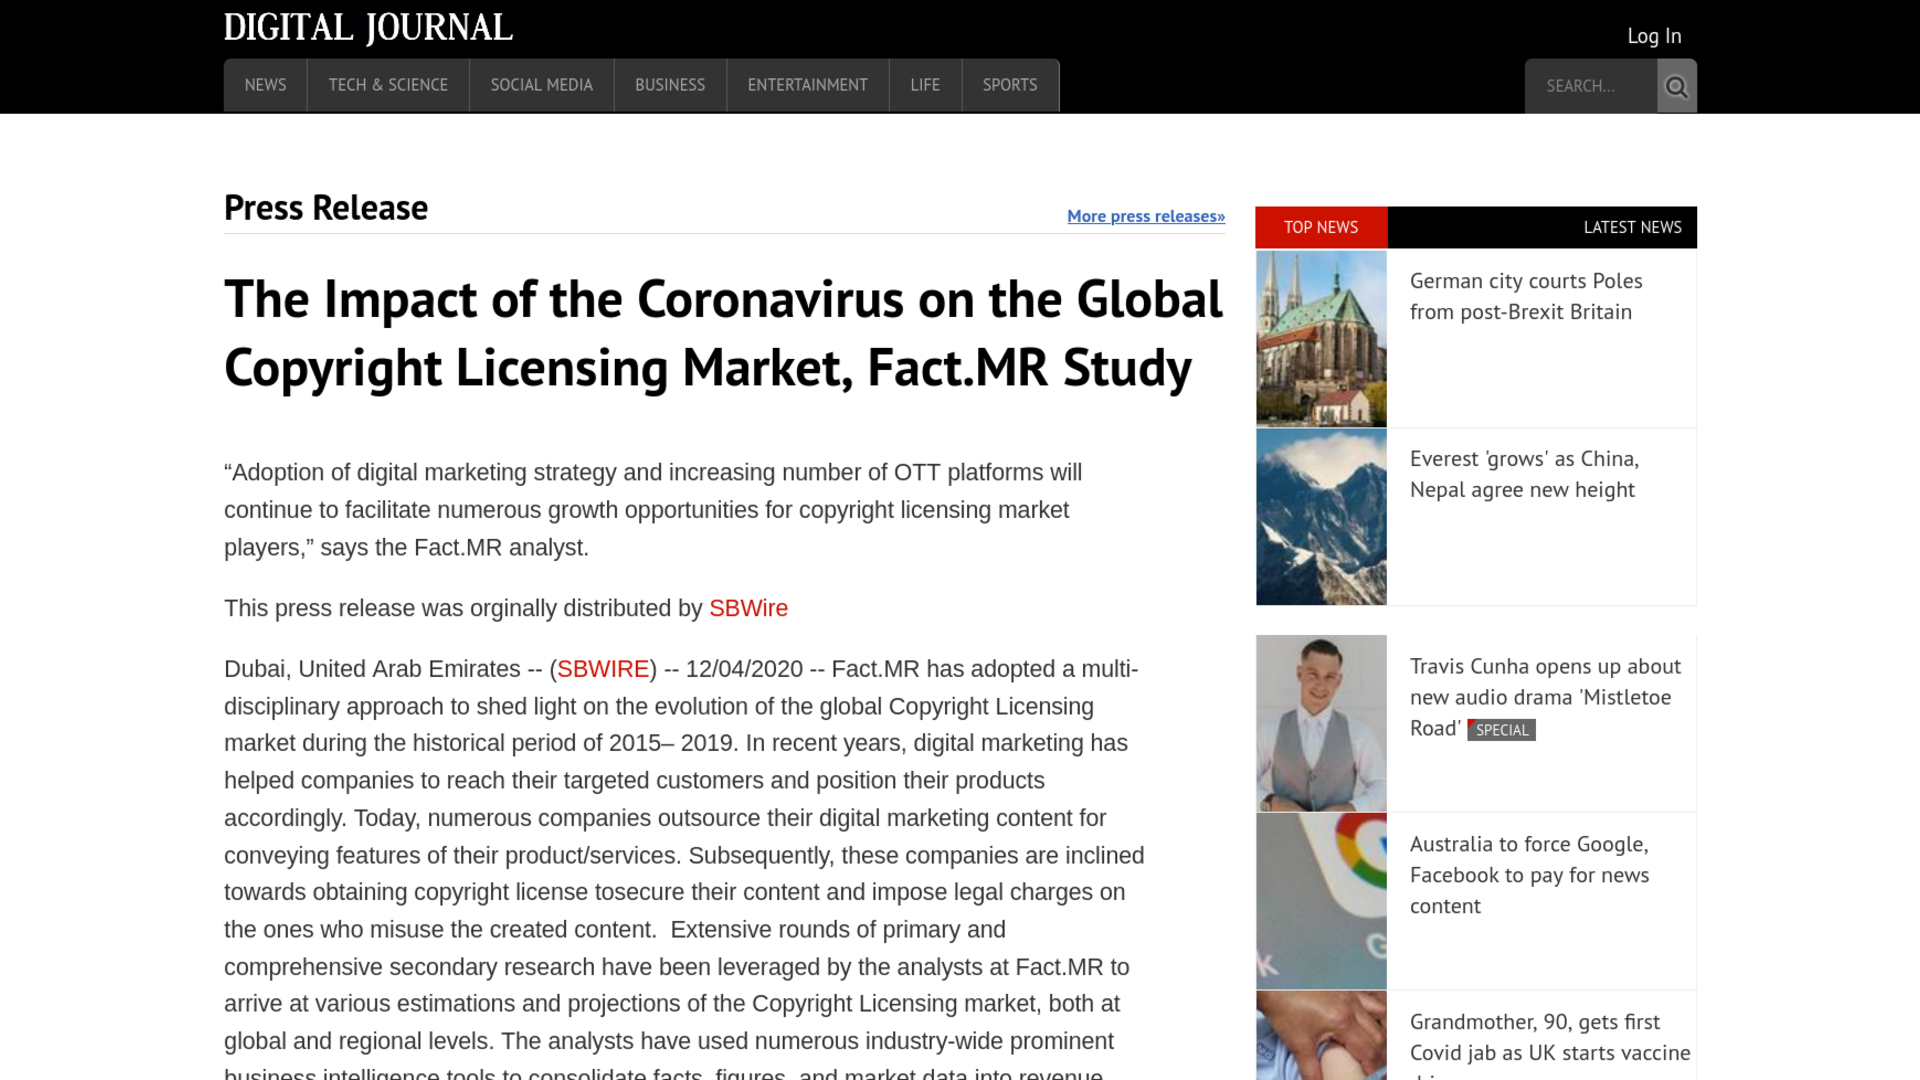 Fairness Rocks News The Impact of the Coronavirus on the Global Copyright Licensing Market, Fact.MR Study